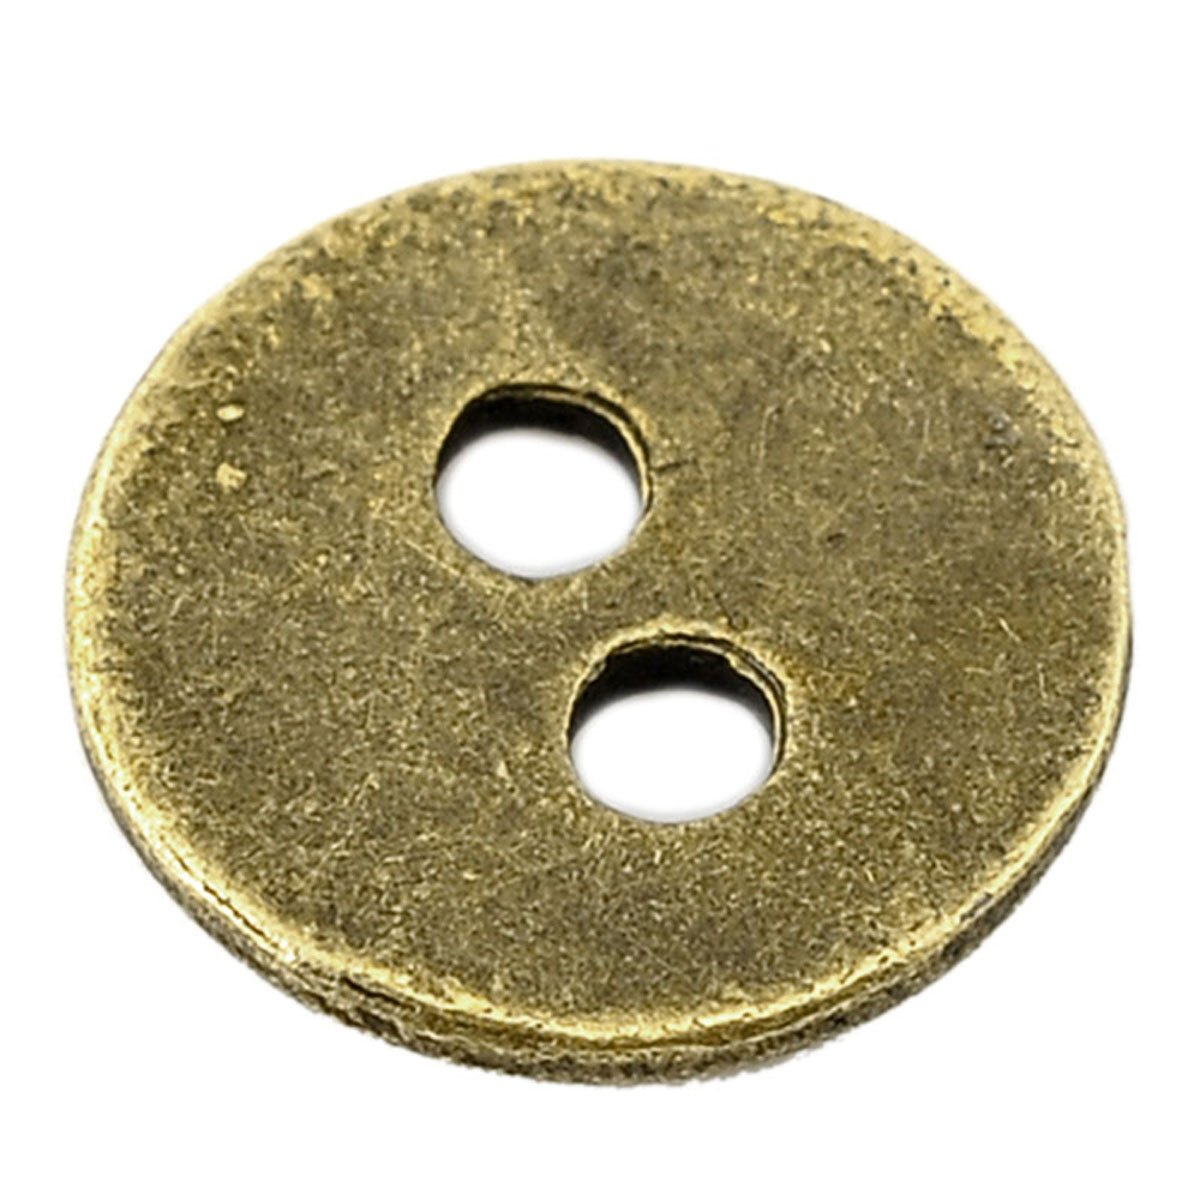 HOUSWEETY 100PCs Bronze Tone 2 Holes Sewing Metal Buttons 11mm(3/8) Dia. HOUSWEETYB21652